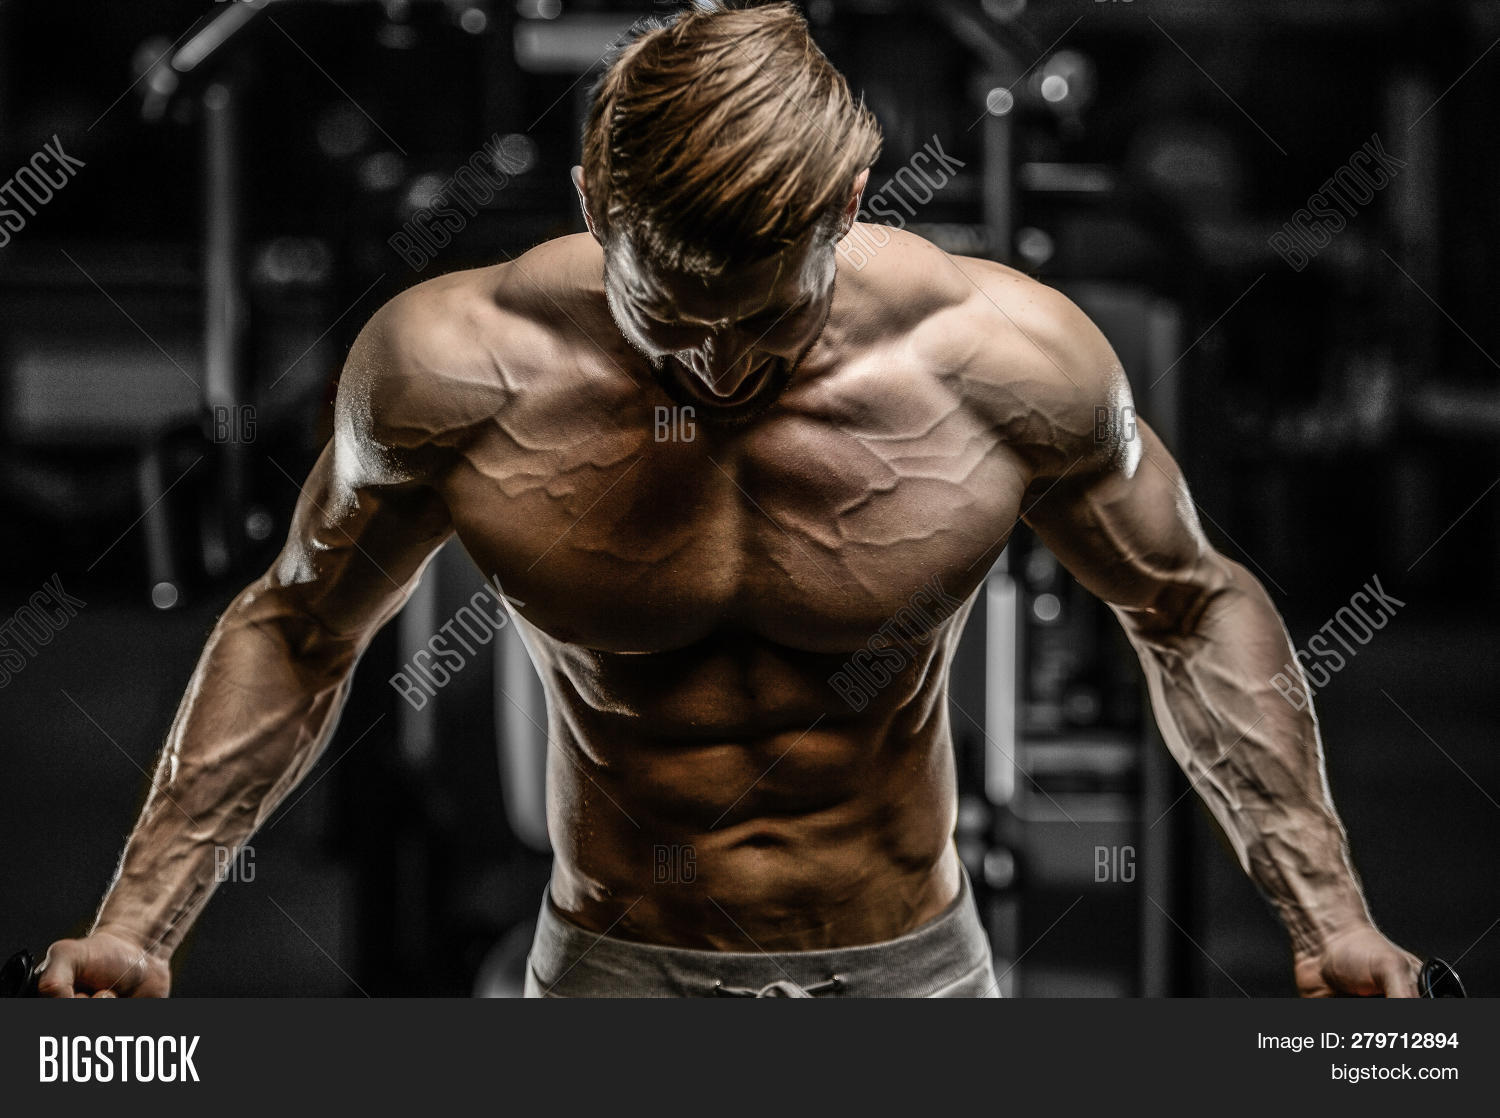 abs,active,arms,athlete,bar,biceps,body,bodybuilder,bodybuilding,brutal,care,caucasian,chest,coach,competitor,dumbbell,energy,exercising,fat,fit,fitness,force,gym,handsome,health,healthcare,heavy,instructor,lifting,male,men,muscle,muscular,nutrition,out,physique,power,sexy,shape,shoulder,sport,sportsman,steroids,strength,supplements,torso,training,work,workout